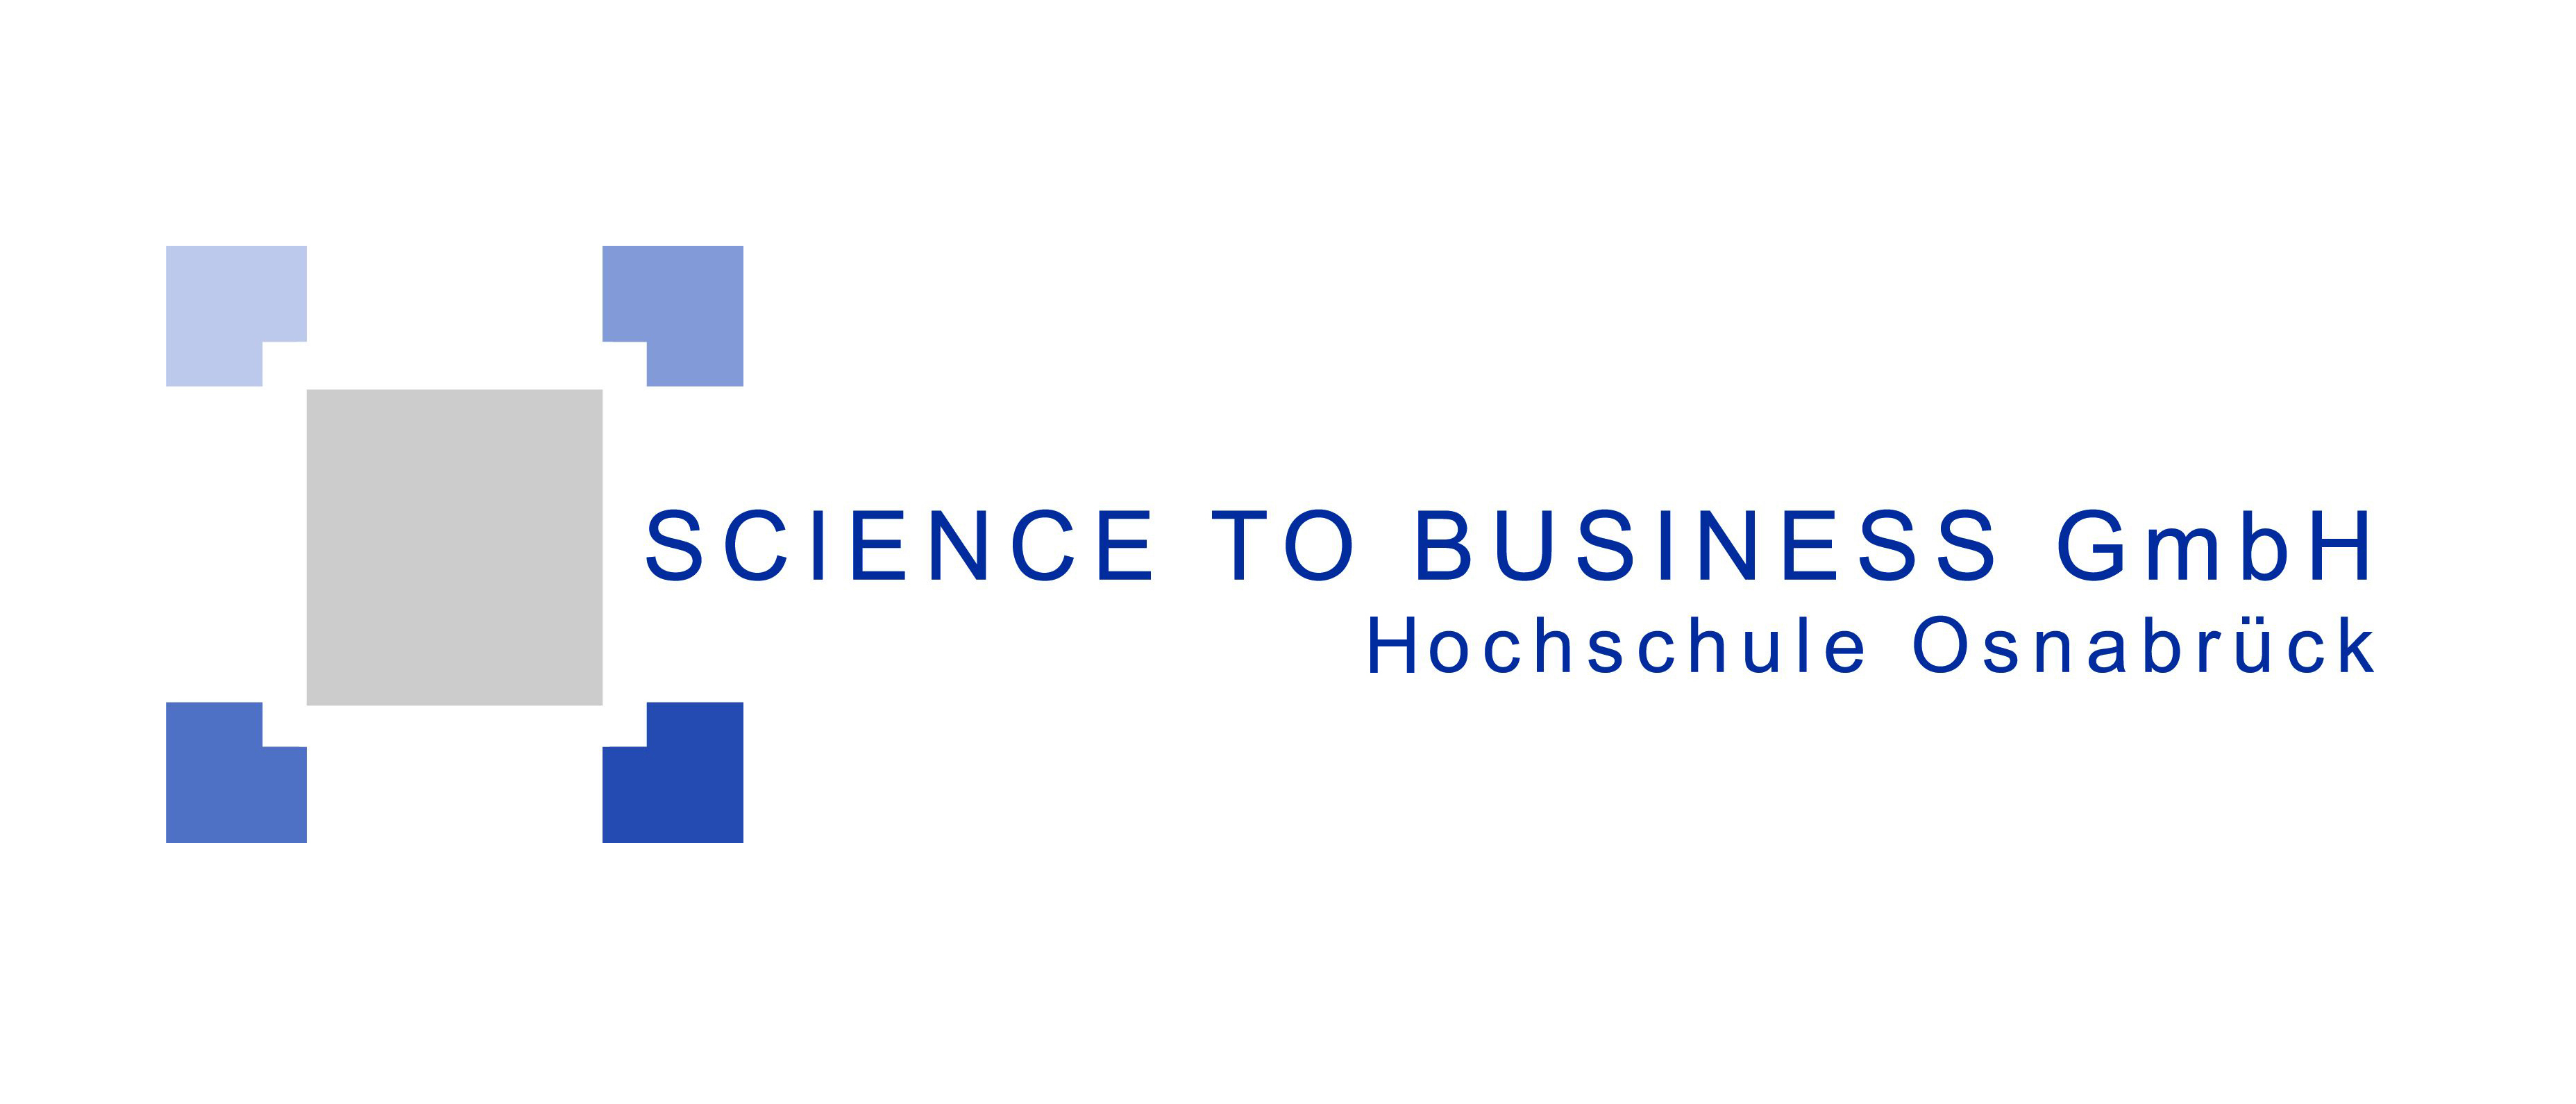 Science to Business GmbH